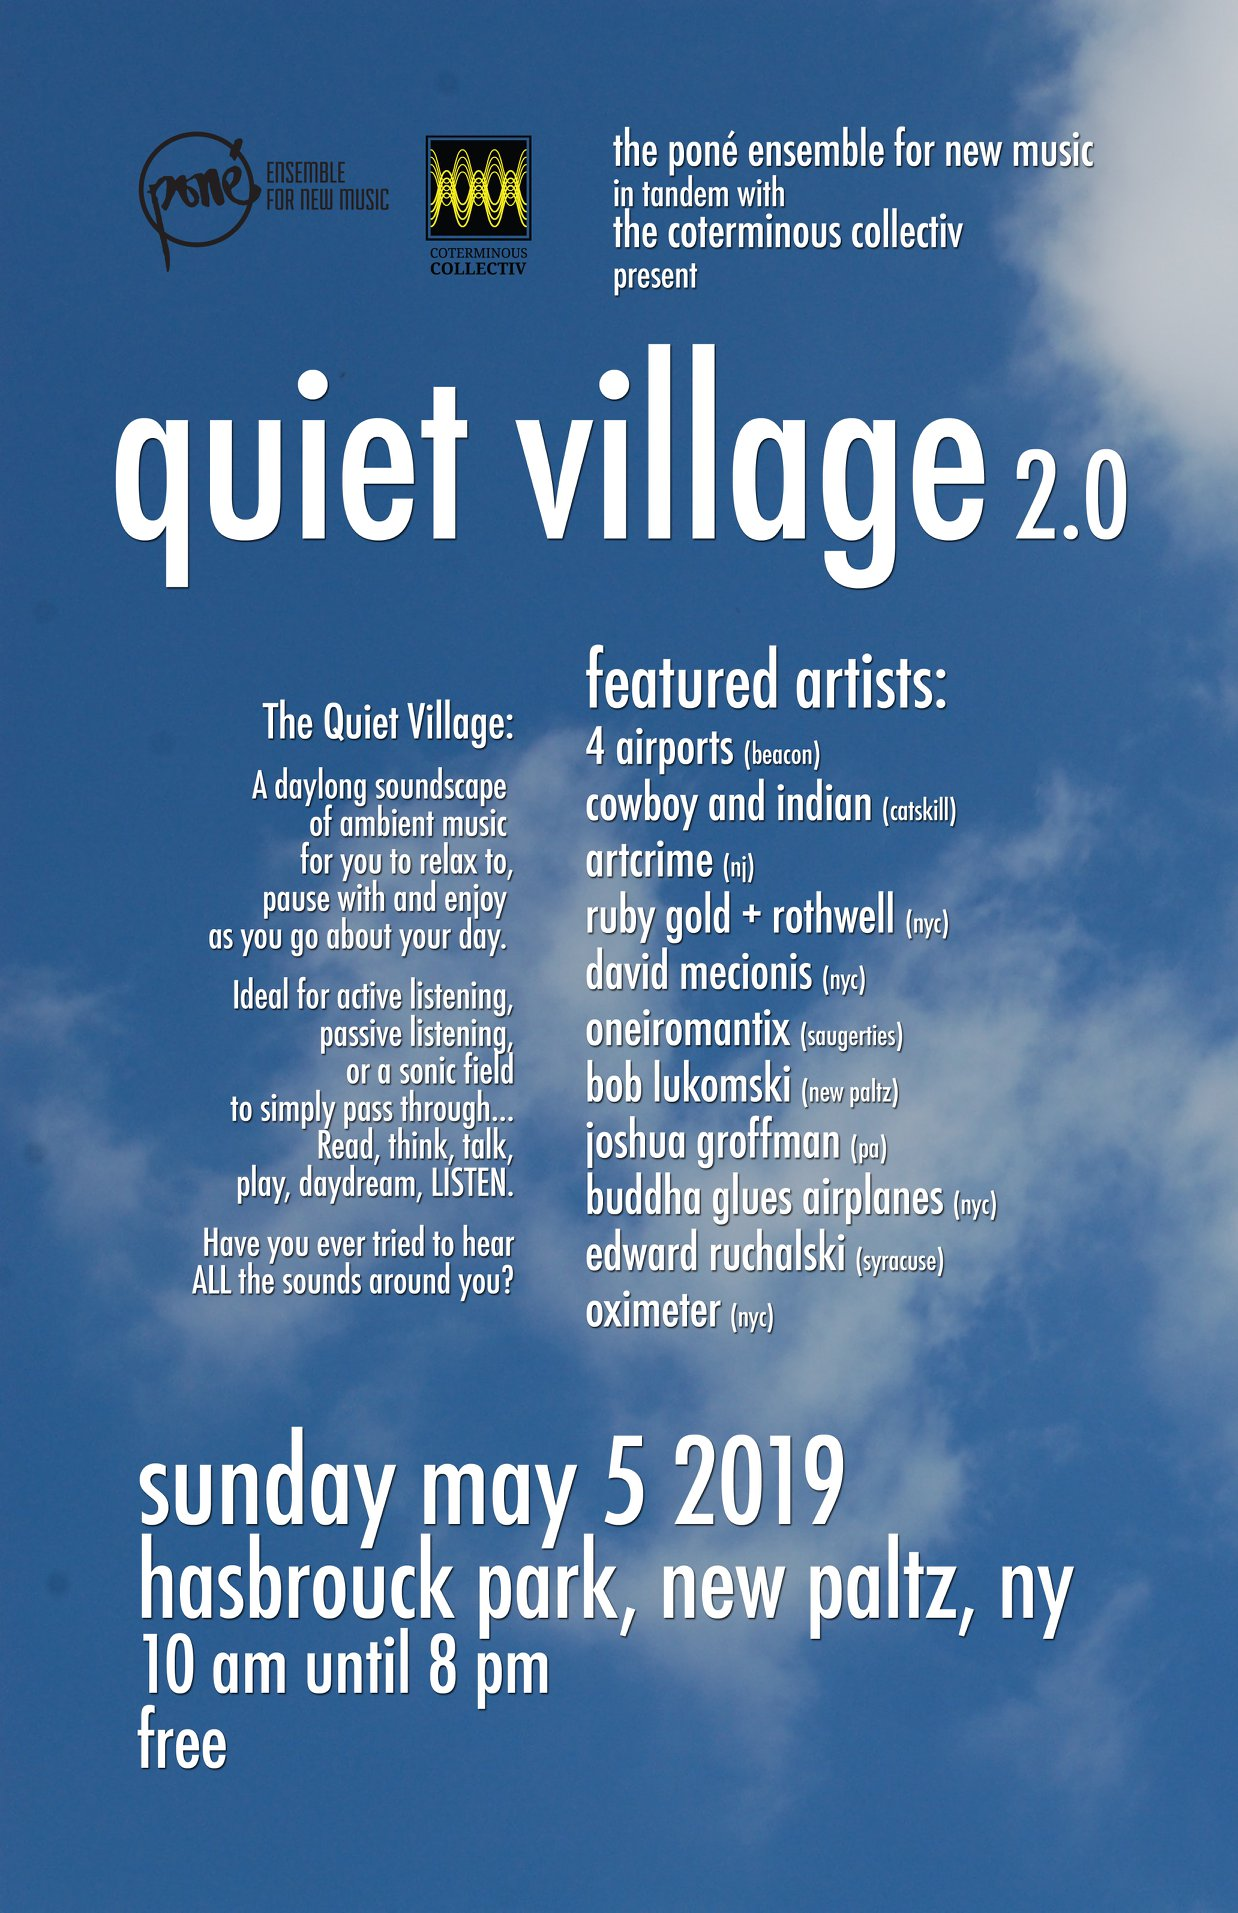 Quiet Village Event Takes Place In New Paltz Sunday | WAMC